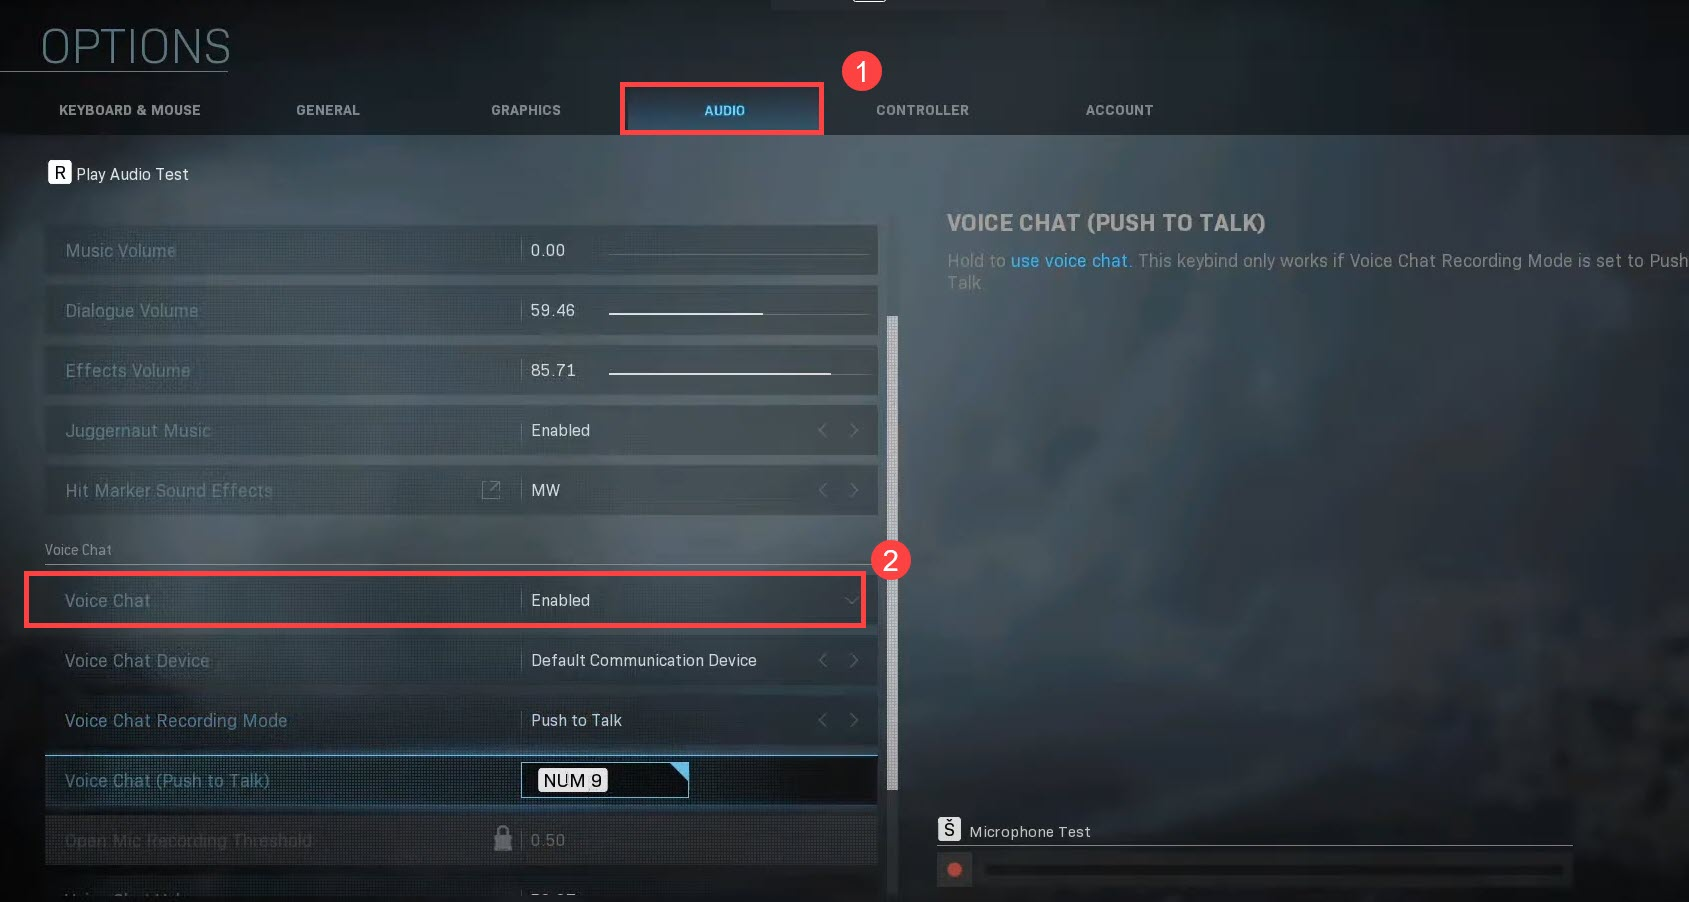 voice chat enabled